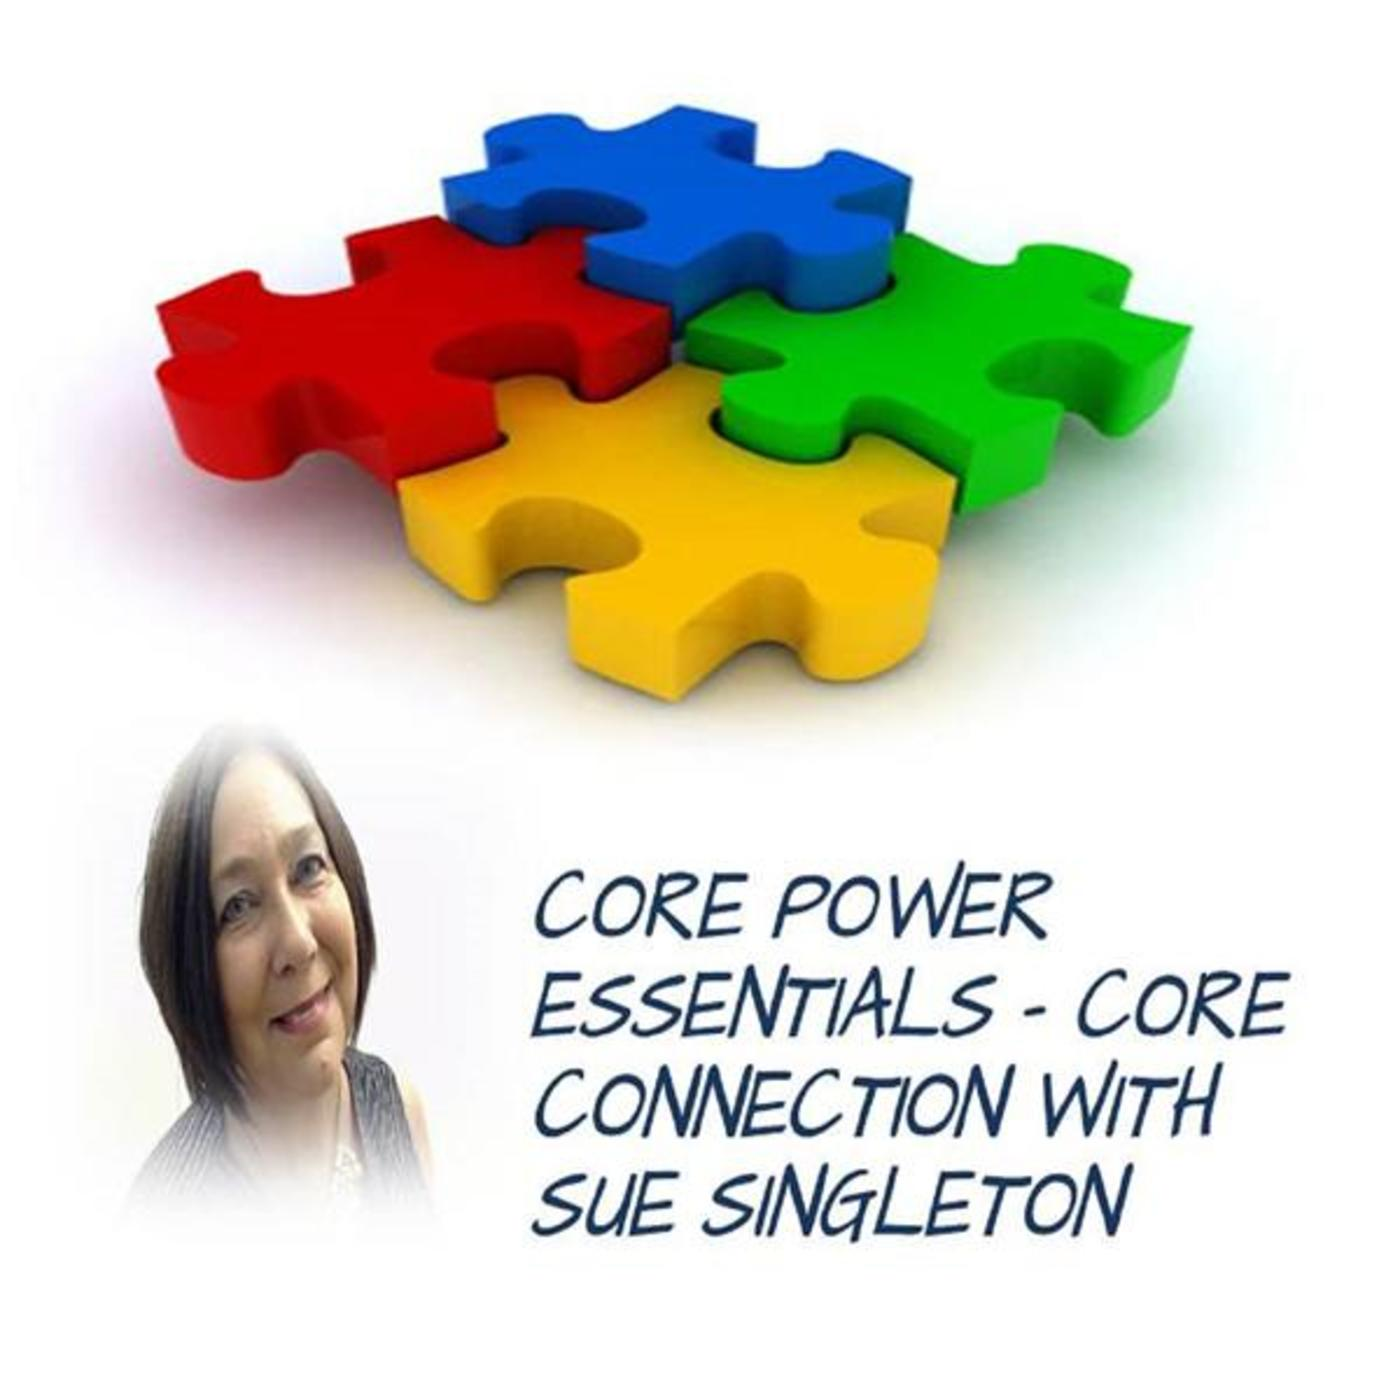 Core Power Essentials Core Connection with Sue Singleton